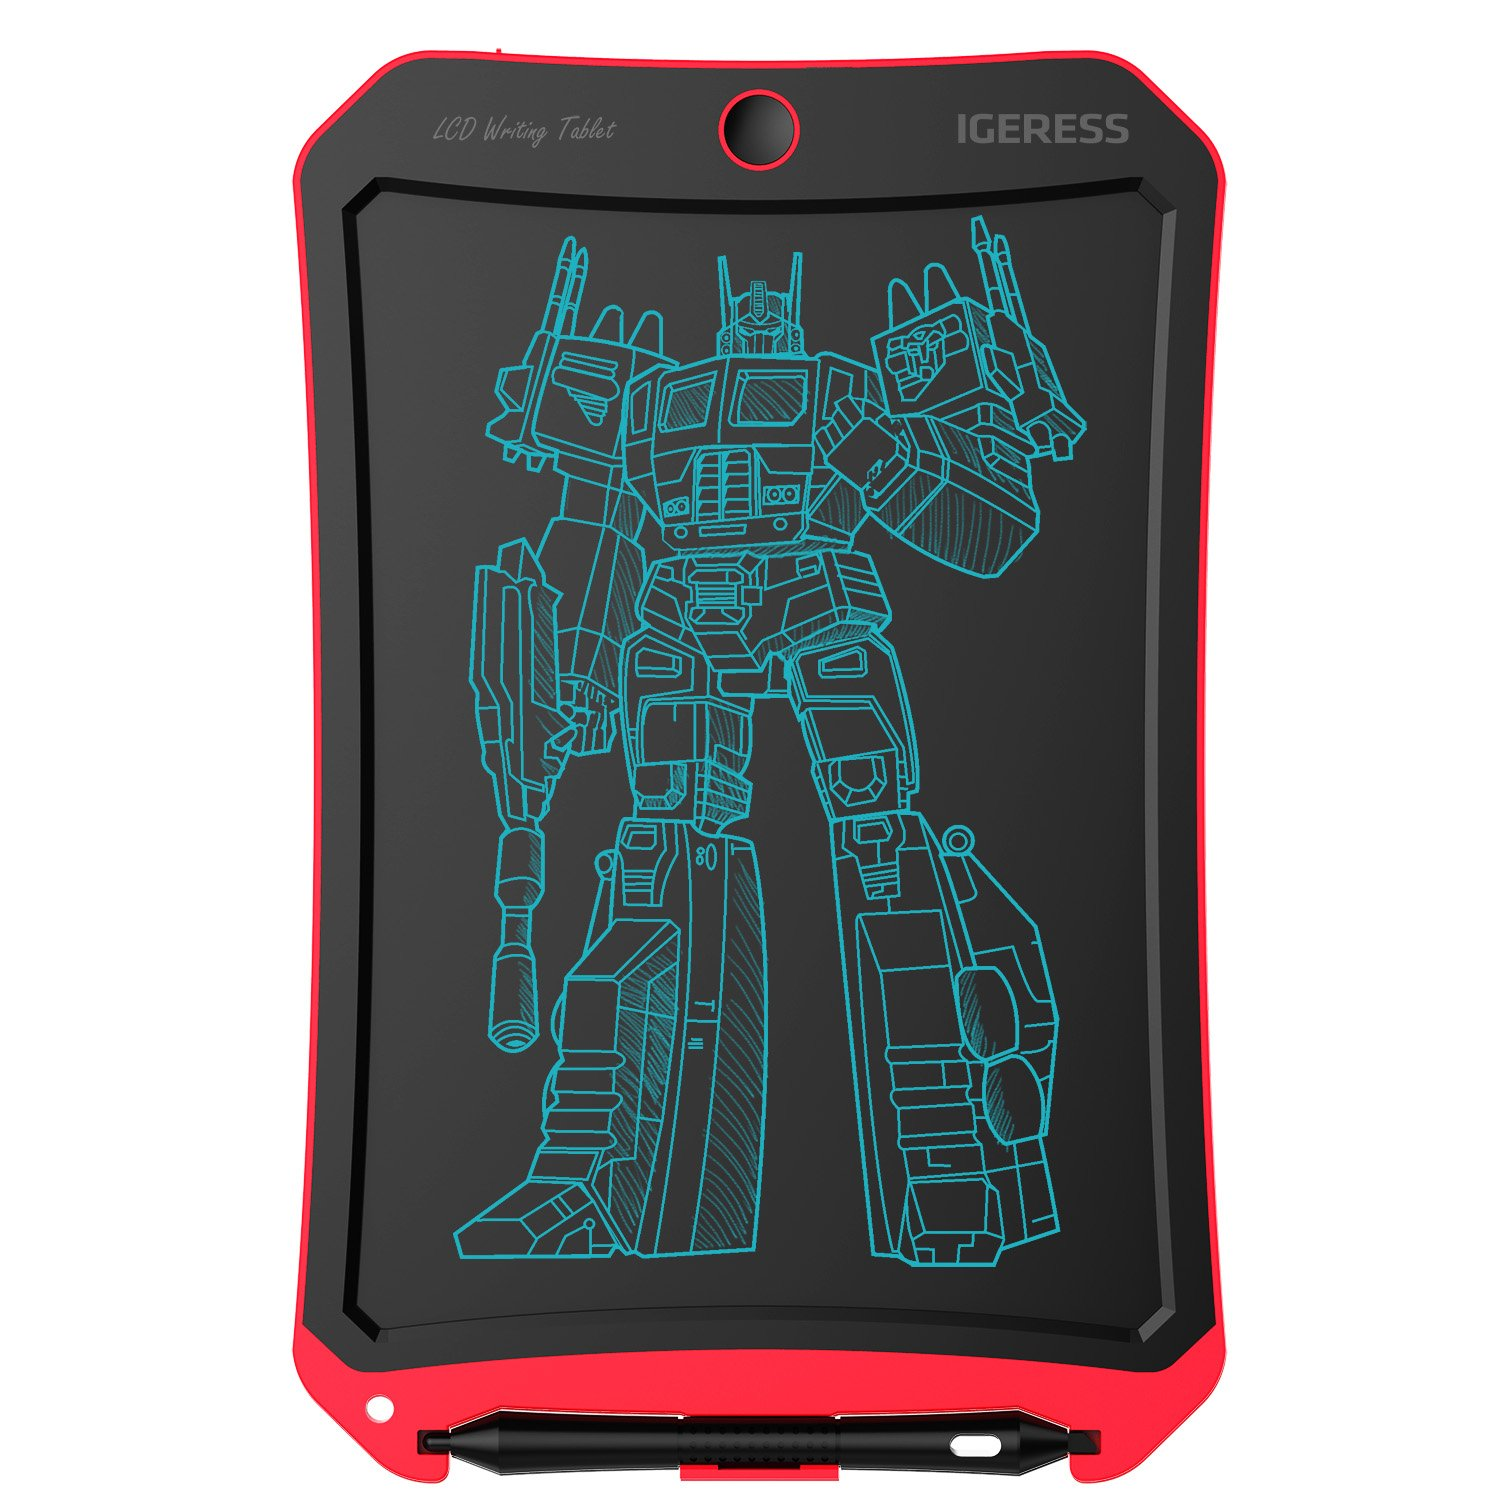 IGERESS Newest 8.5-inch LCD Writing Tablet with Cool Robot Element Design Electronic Writing Board for Kids and Adults Happy Drawing and Working Saving Papers